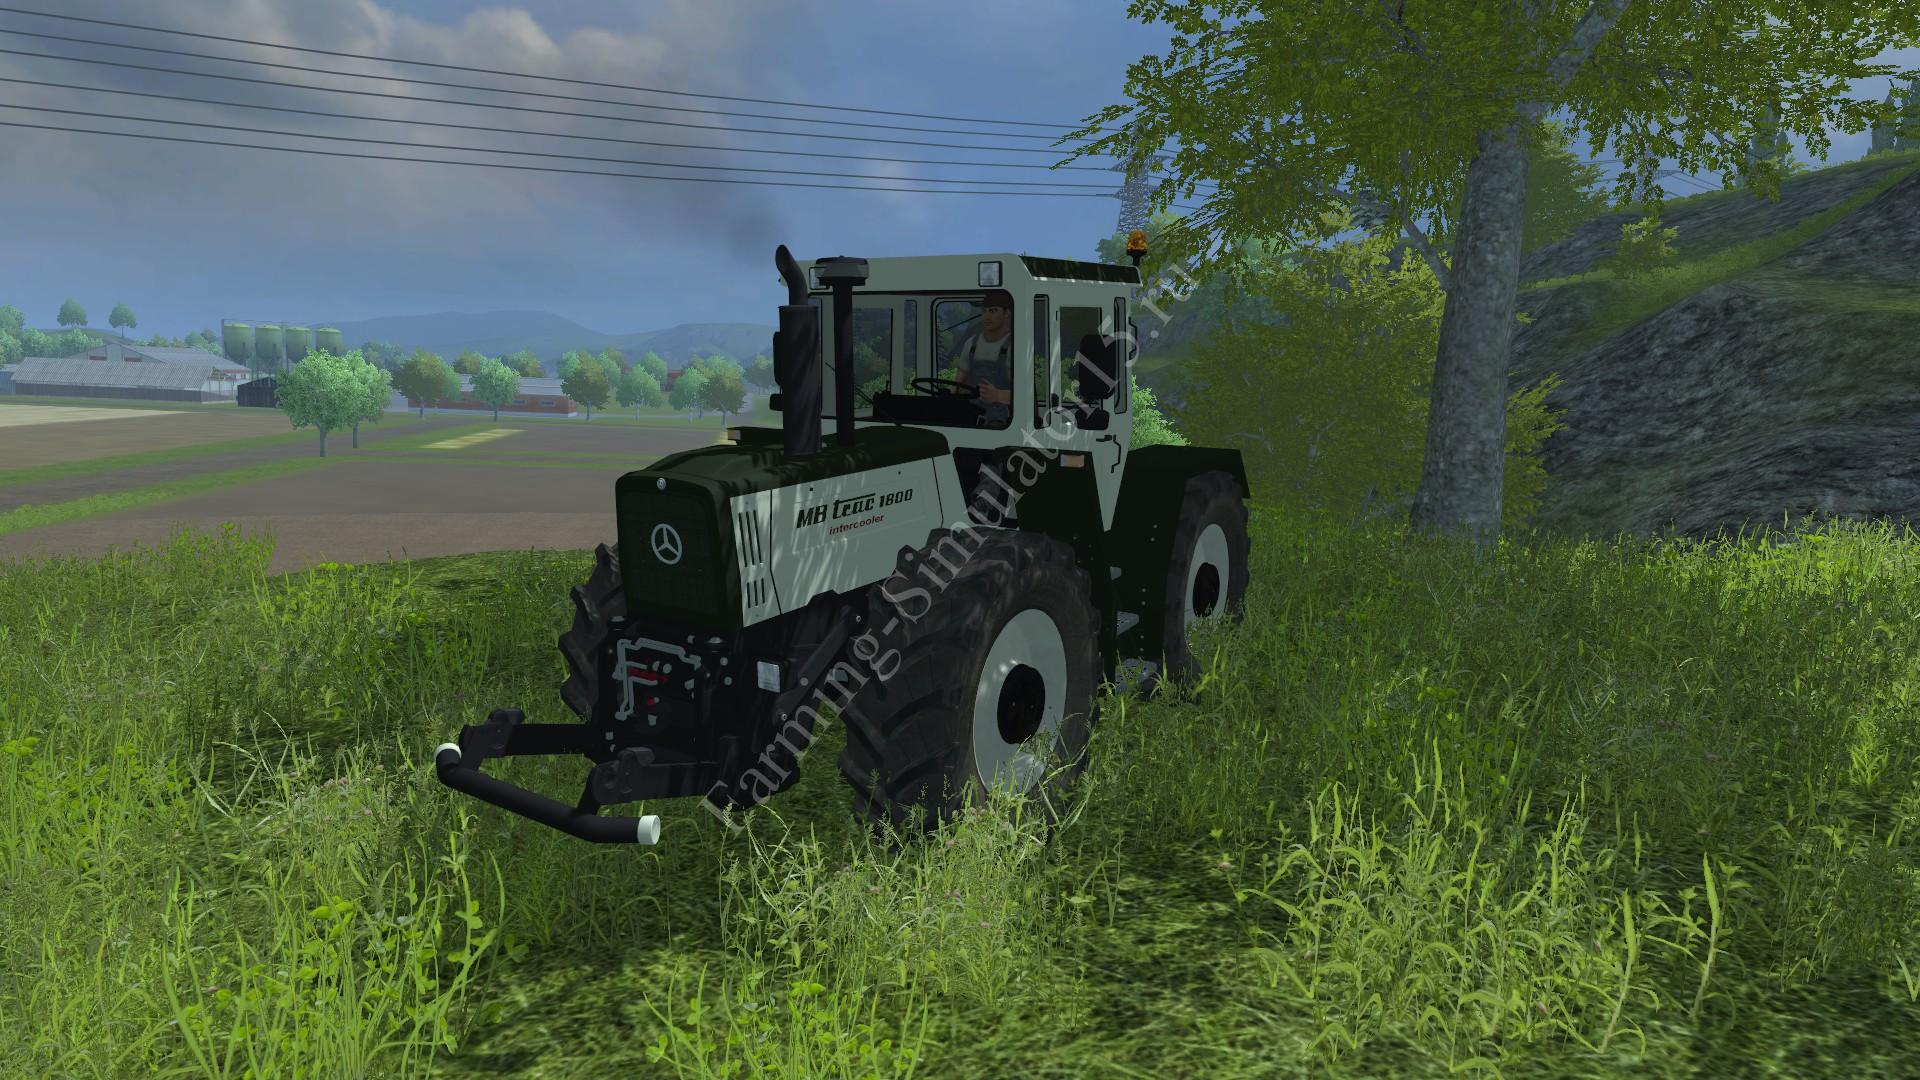 Мод трактора MB Trac 1800 Intercooler Silver Thistle v 2.0 Farming Simulator 2013, Farming Simulator 13